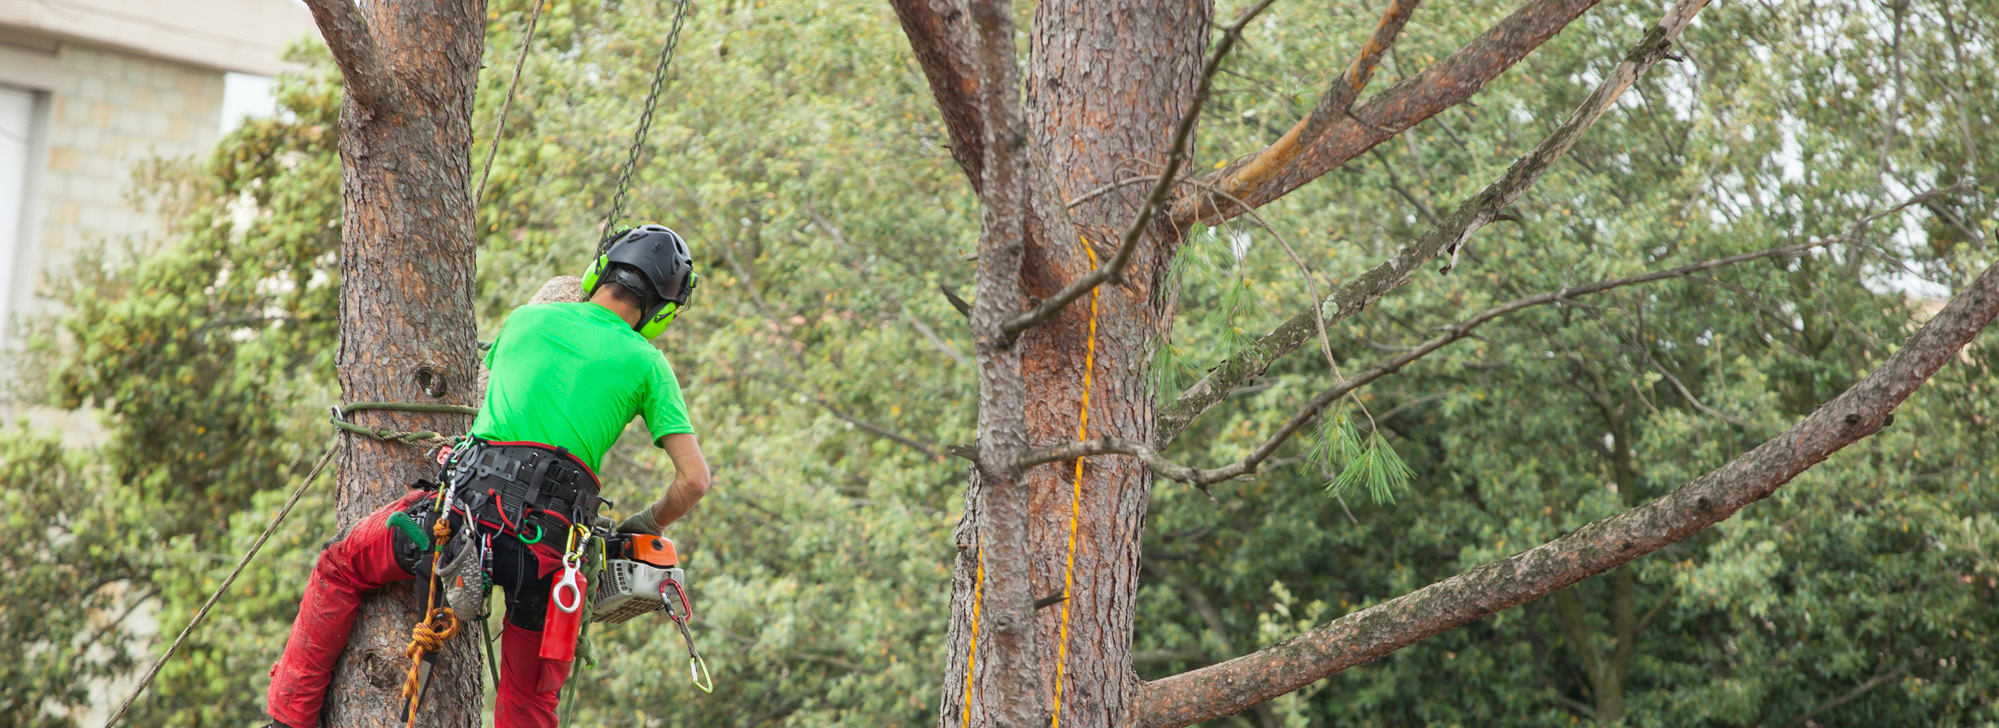 tree services - man pruning a tree